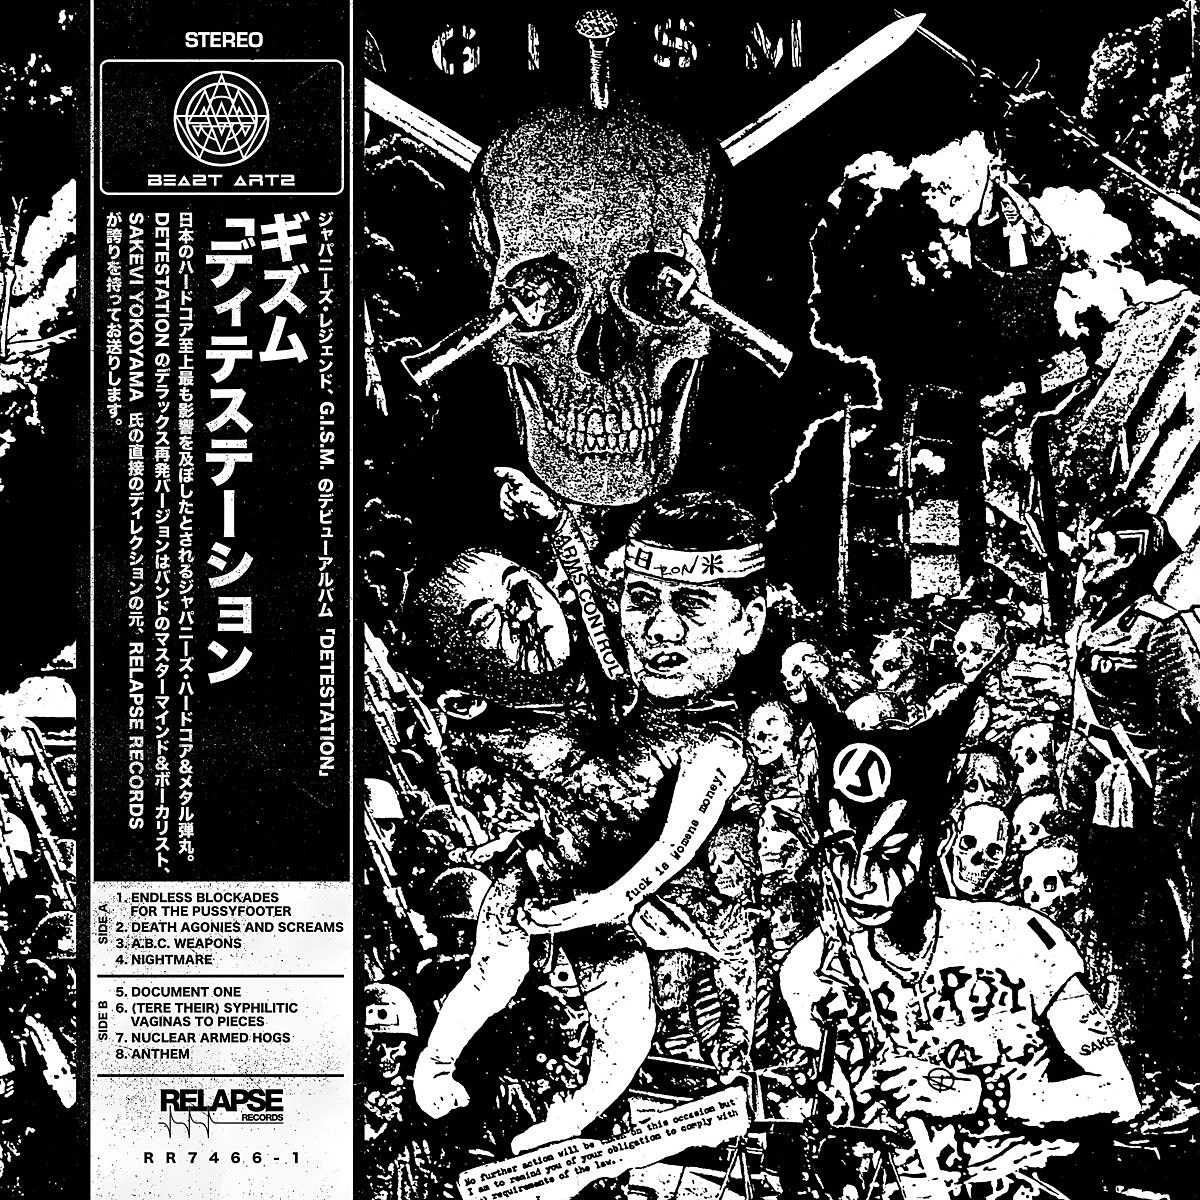 Japanese hardcore legends G.I.S.M. finally reissue debut LP on vinyl, streaming & more